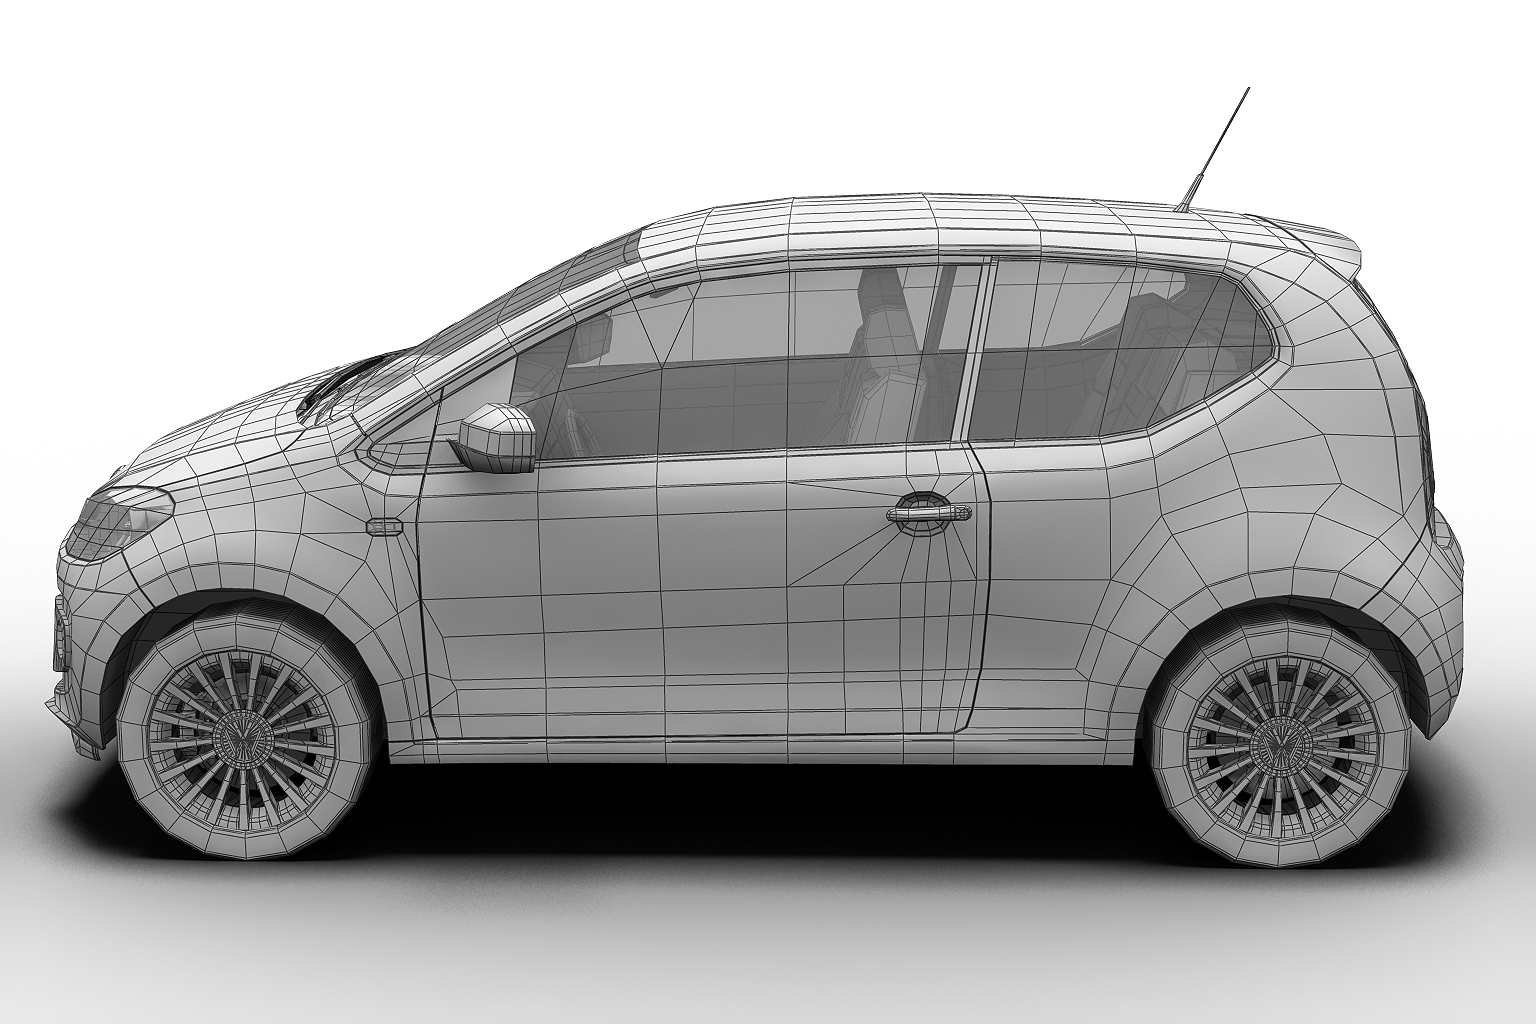 2013 volkswagen up 3d model 3ds max fbx c4d lwo hrc xsi obj 136213